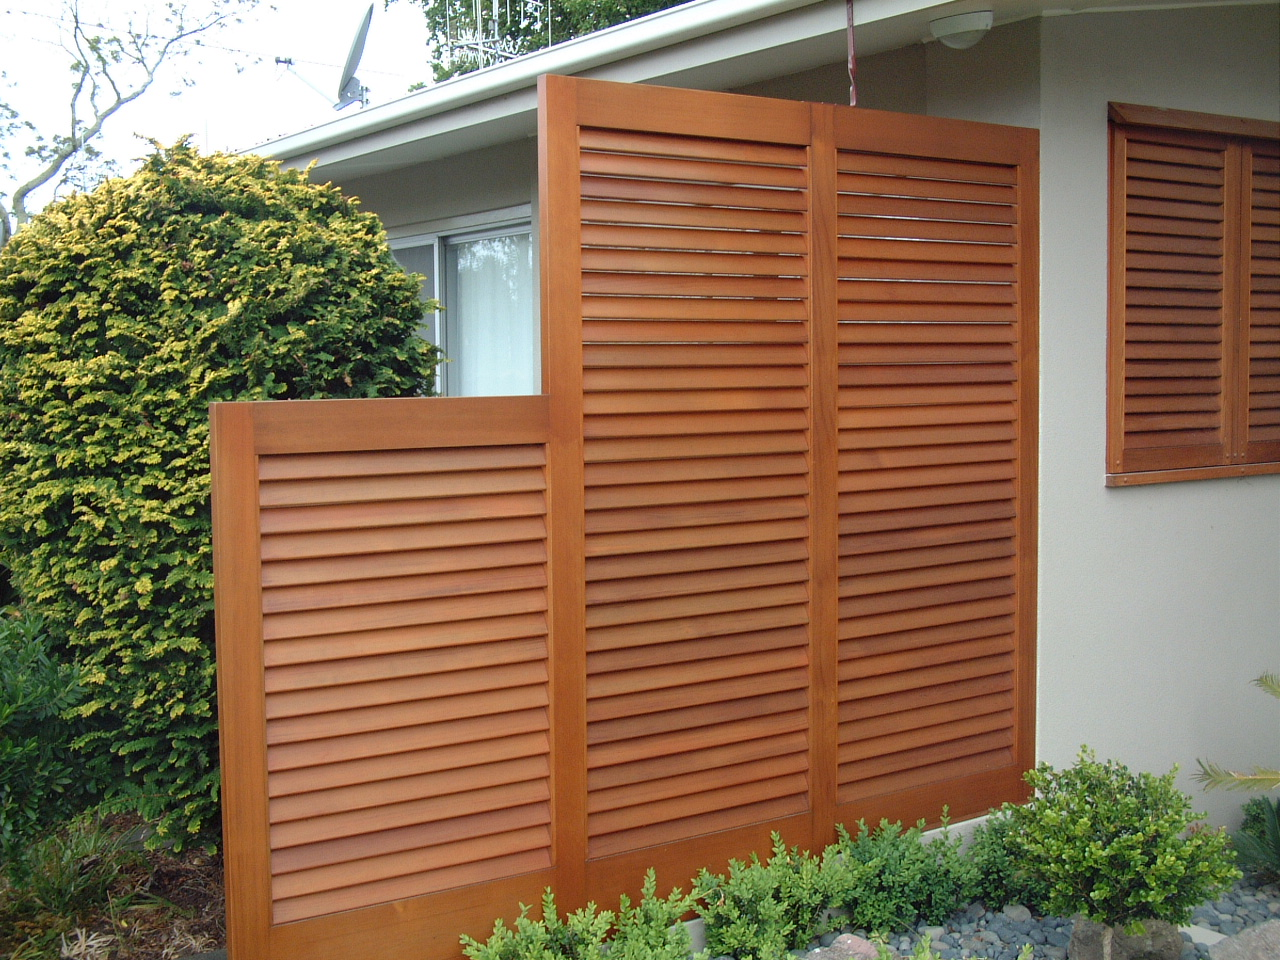 15+ Unique Ideas of Outdoor Privacy Screen Images